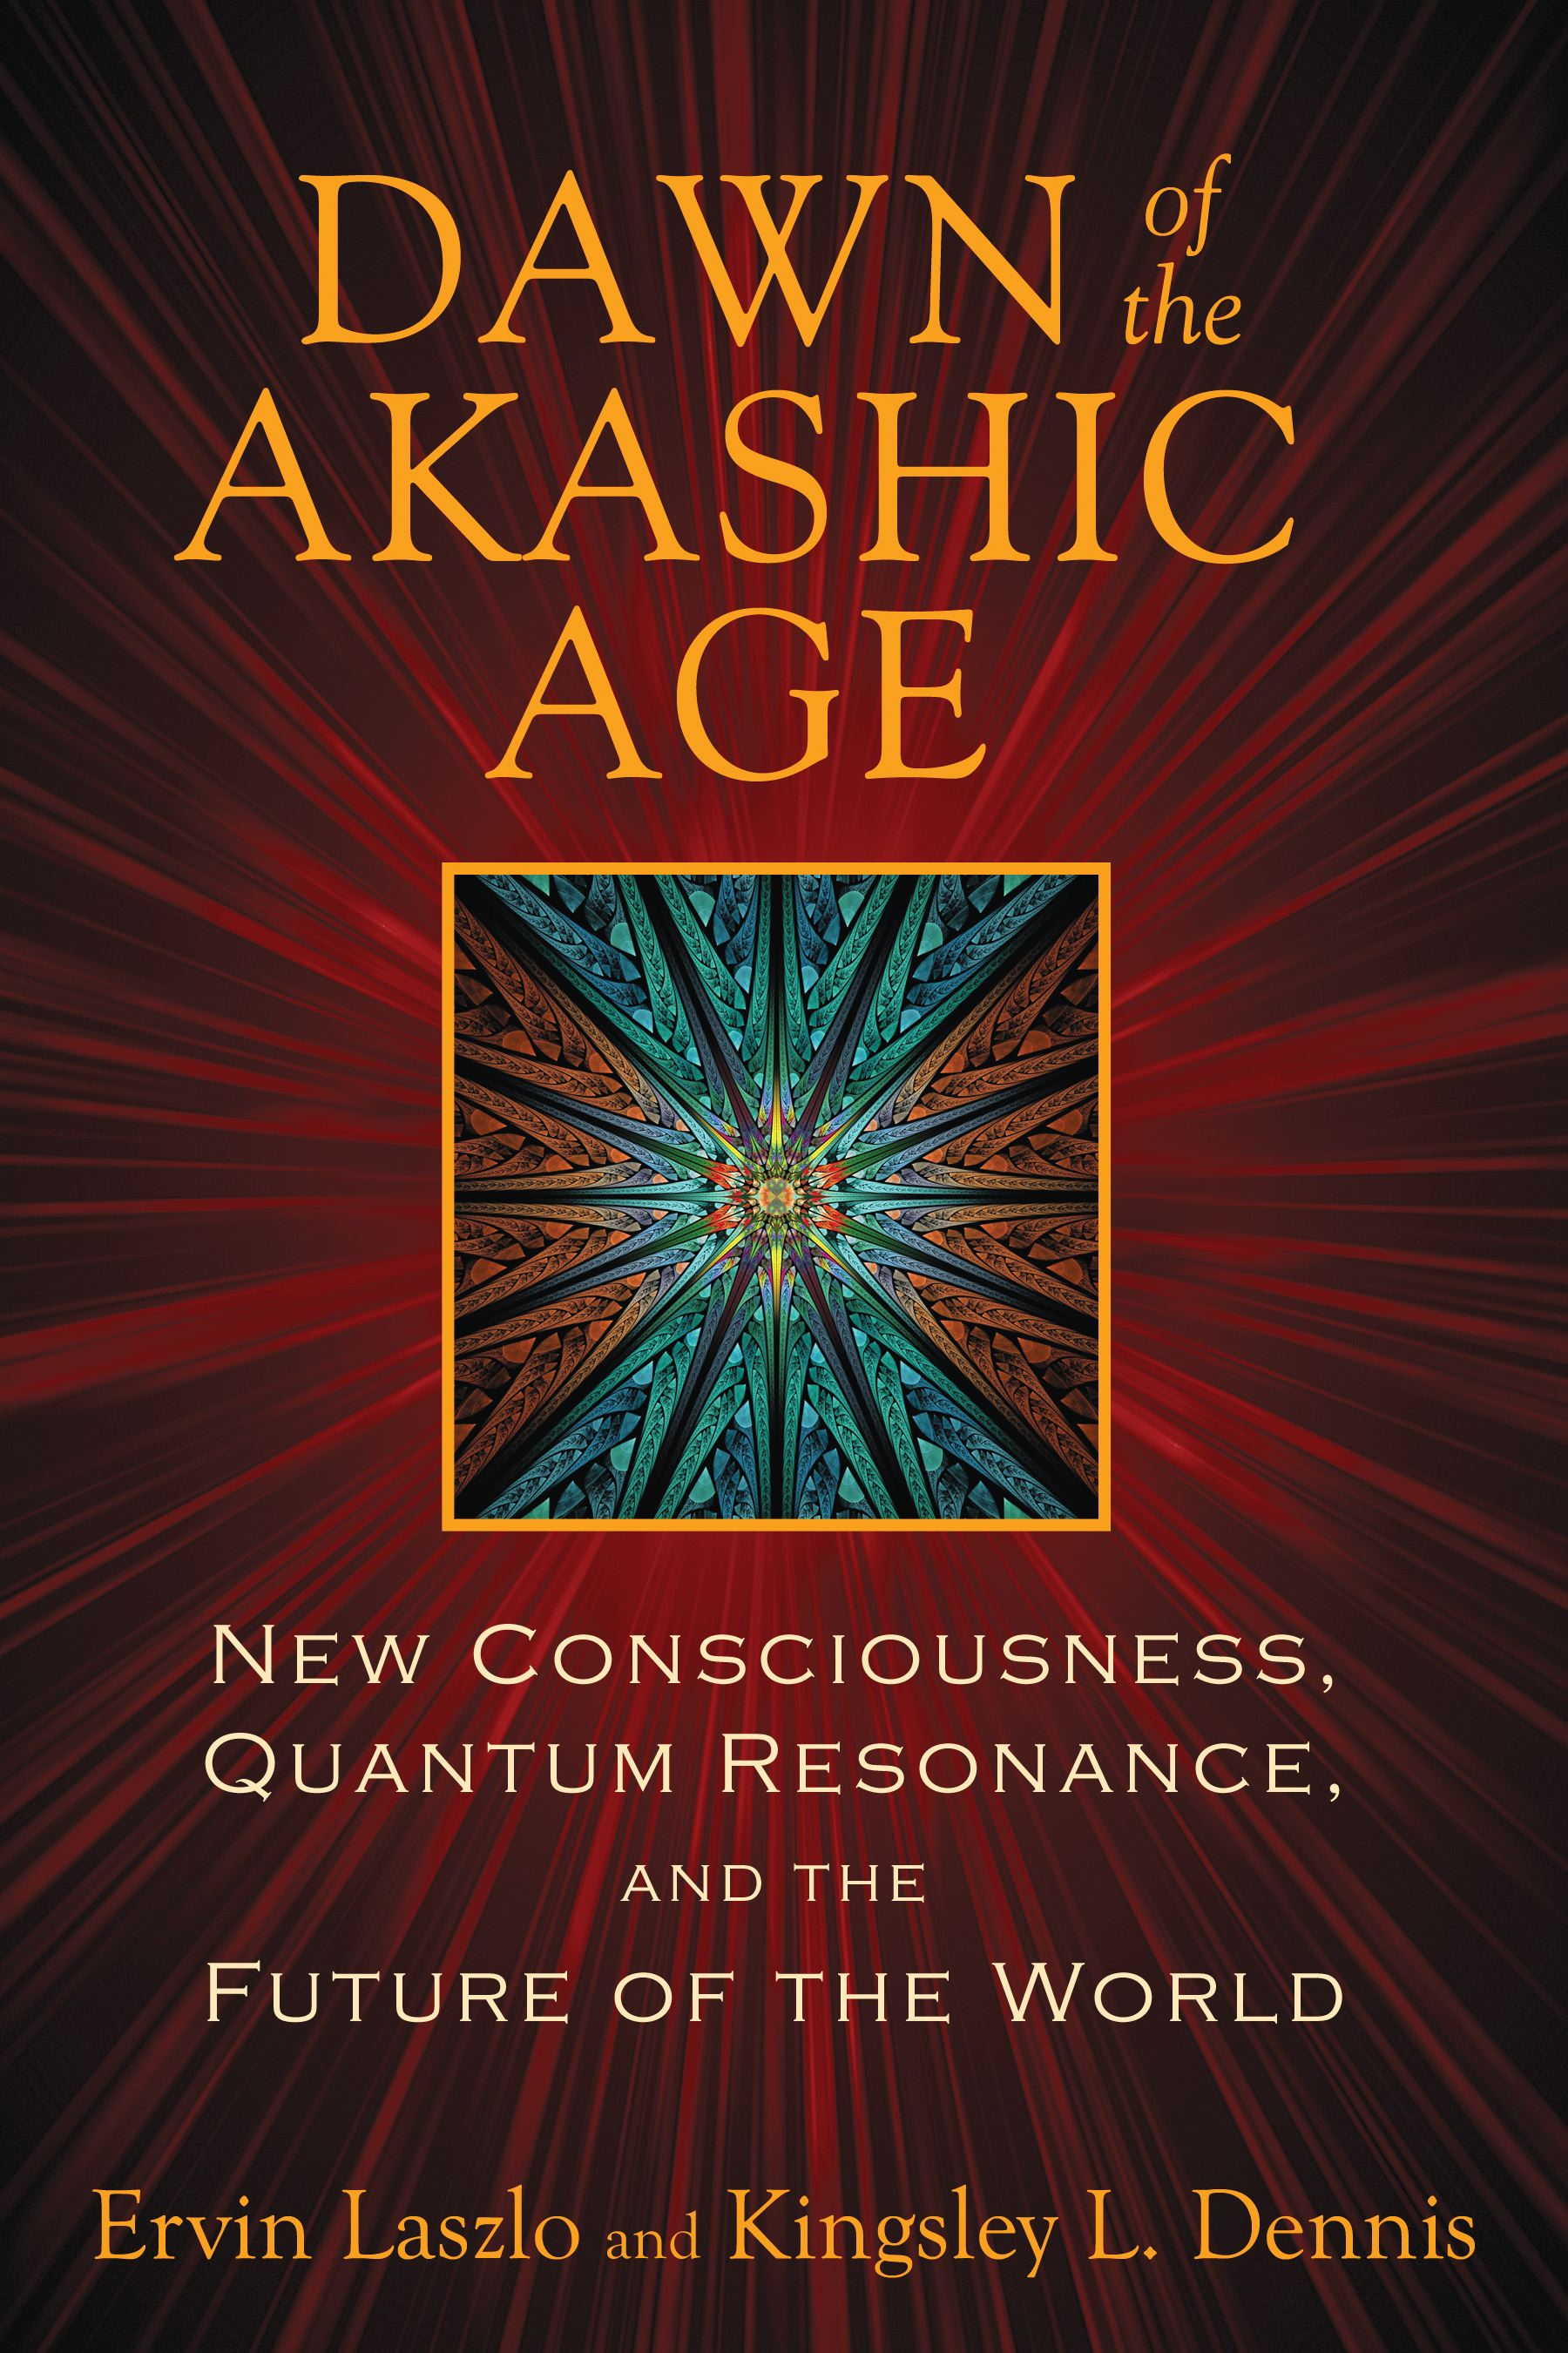 Dawn-of-the-akashic-age-9781620551042_hr